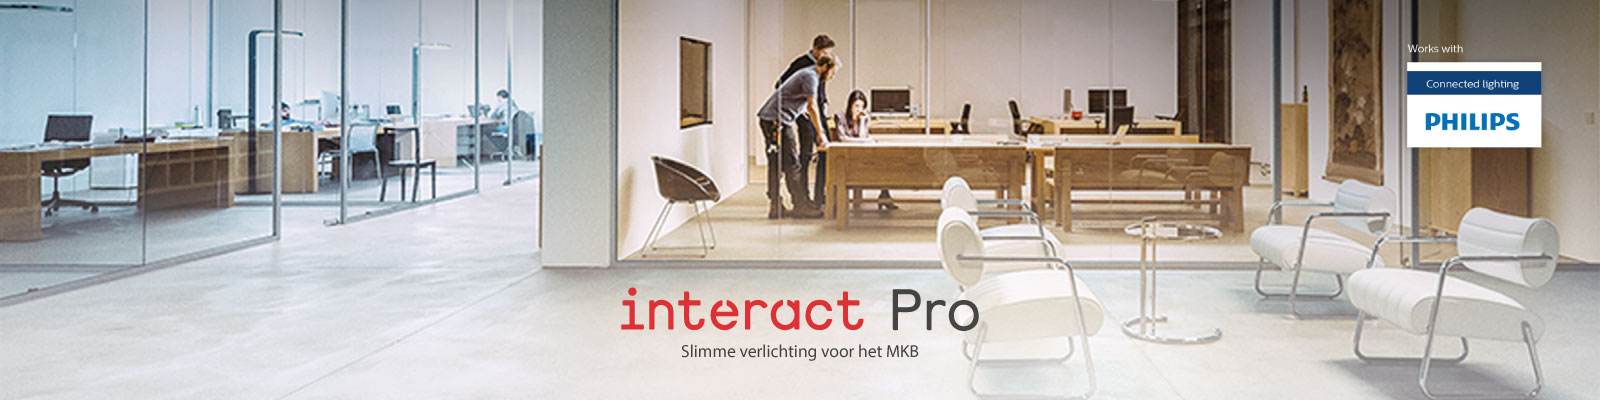 Philips interact Pro